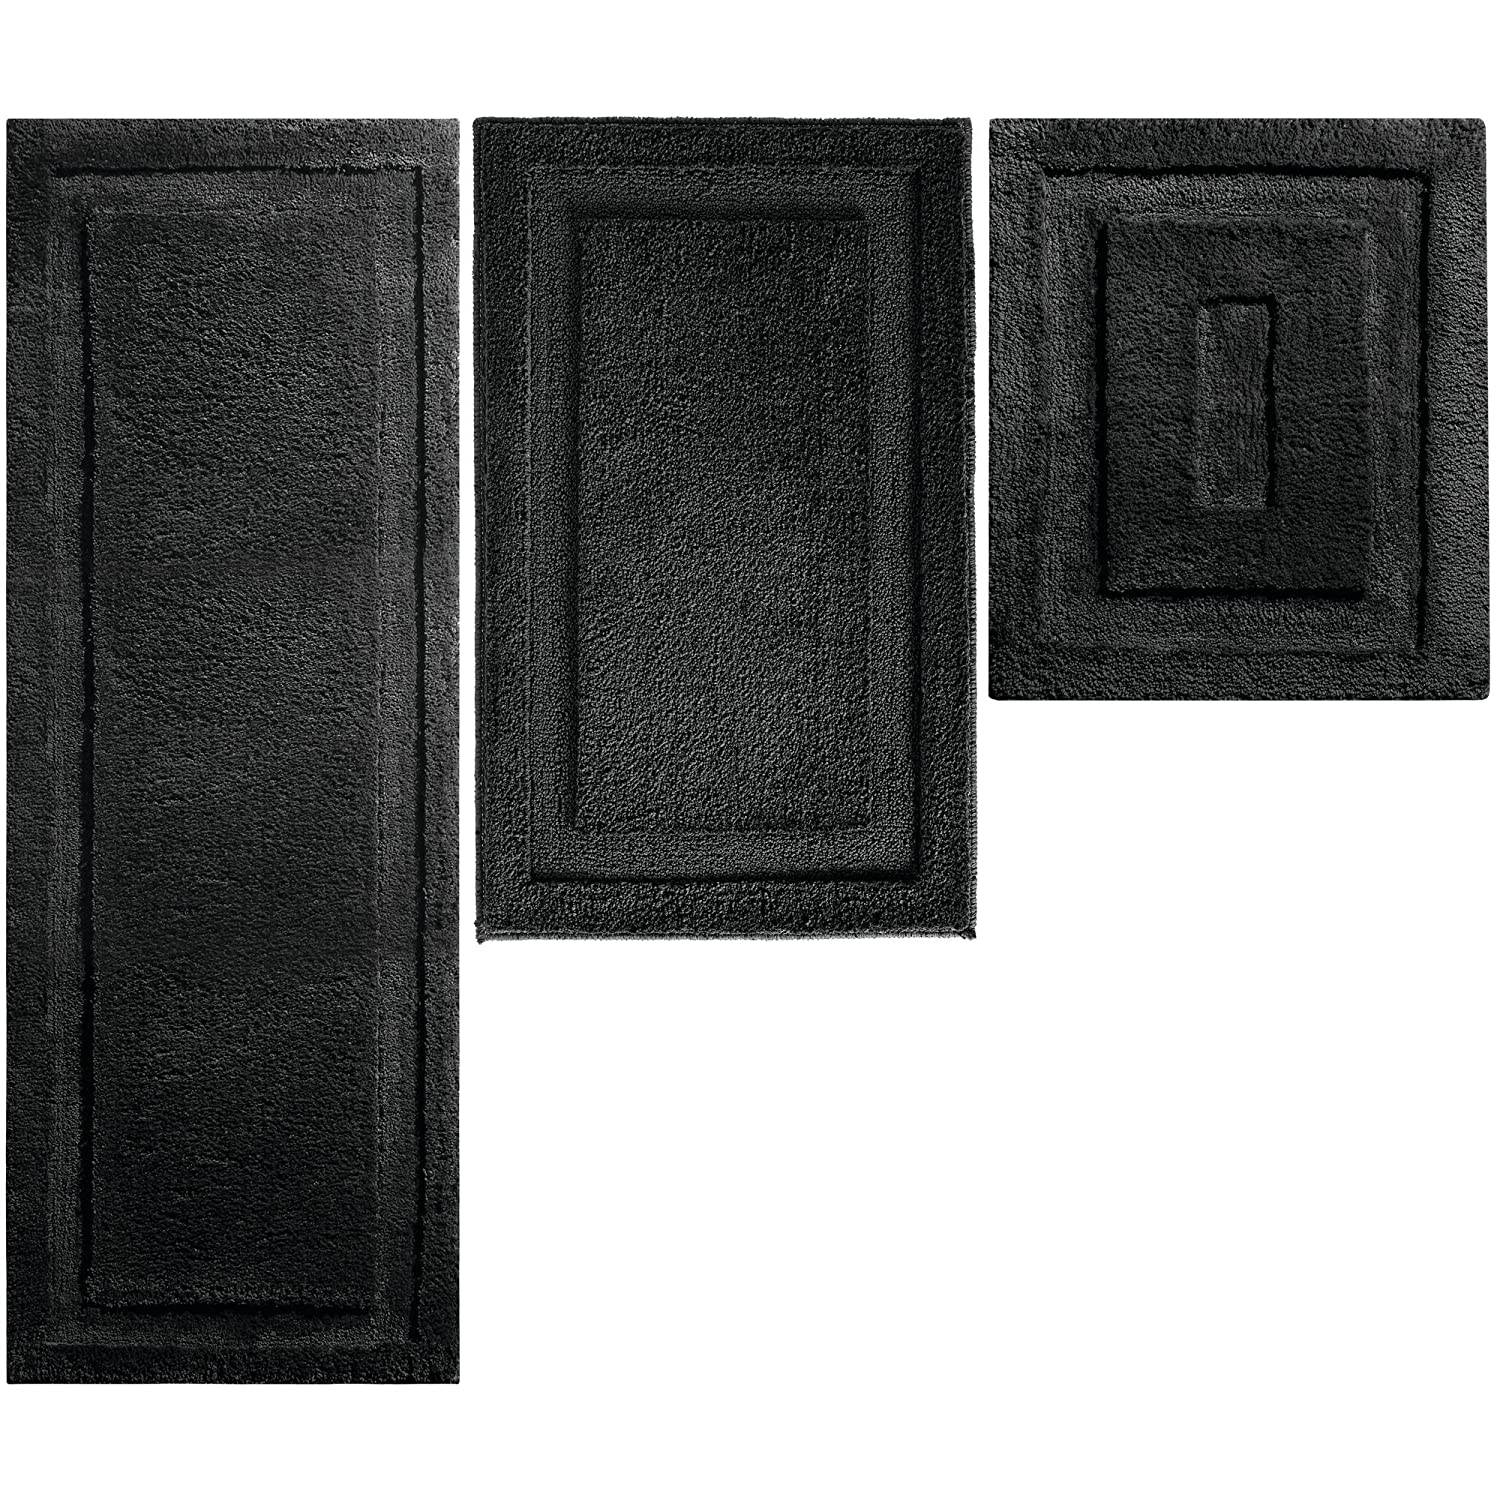 mDesign Soft Microfiber Polyester Spa Rugs for Bathroom Vanity Tub Shower Water Absorbent Machine Washable Includes Plush Non Slip Rectangular Accent Rug Mats in 3 Sizes Set of 3 Black